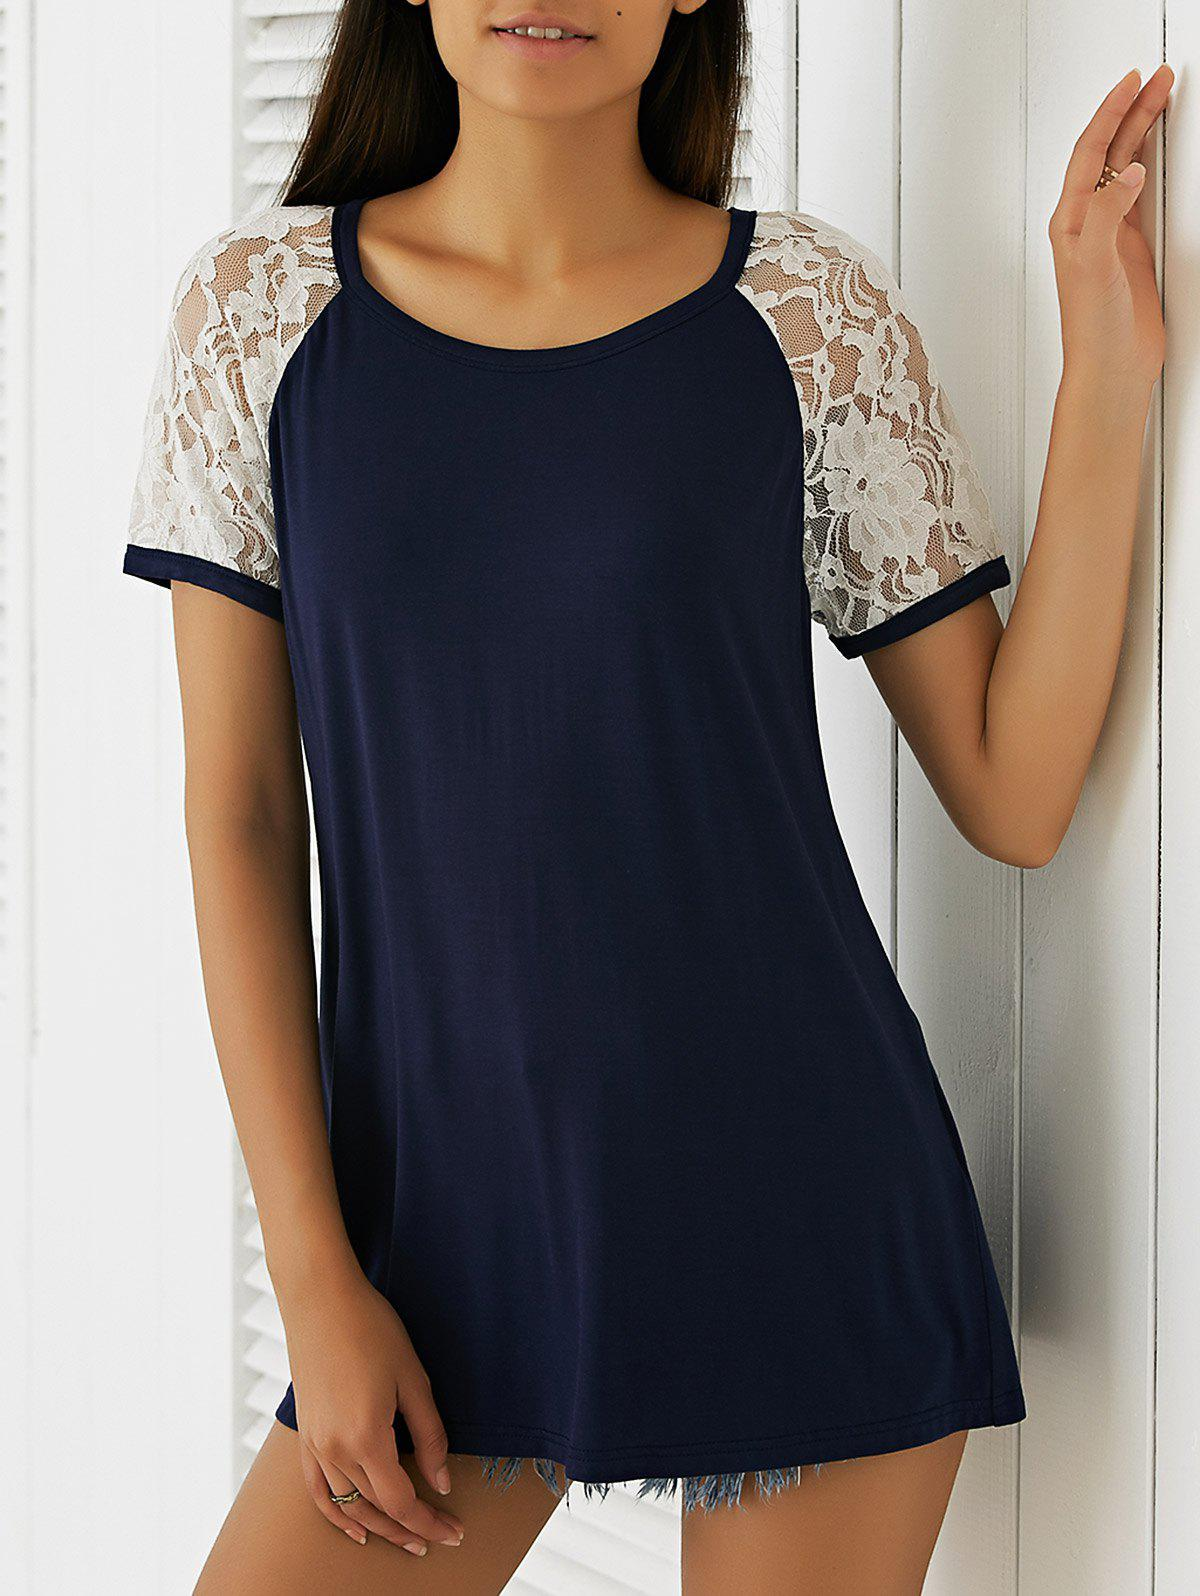 Slimming Loose-Fitting Lace Stitching T-Shirt